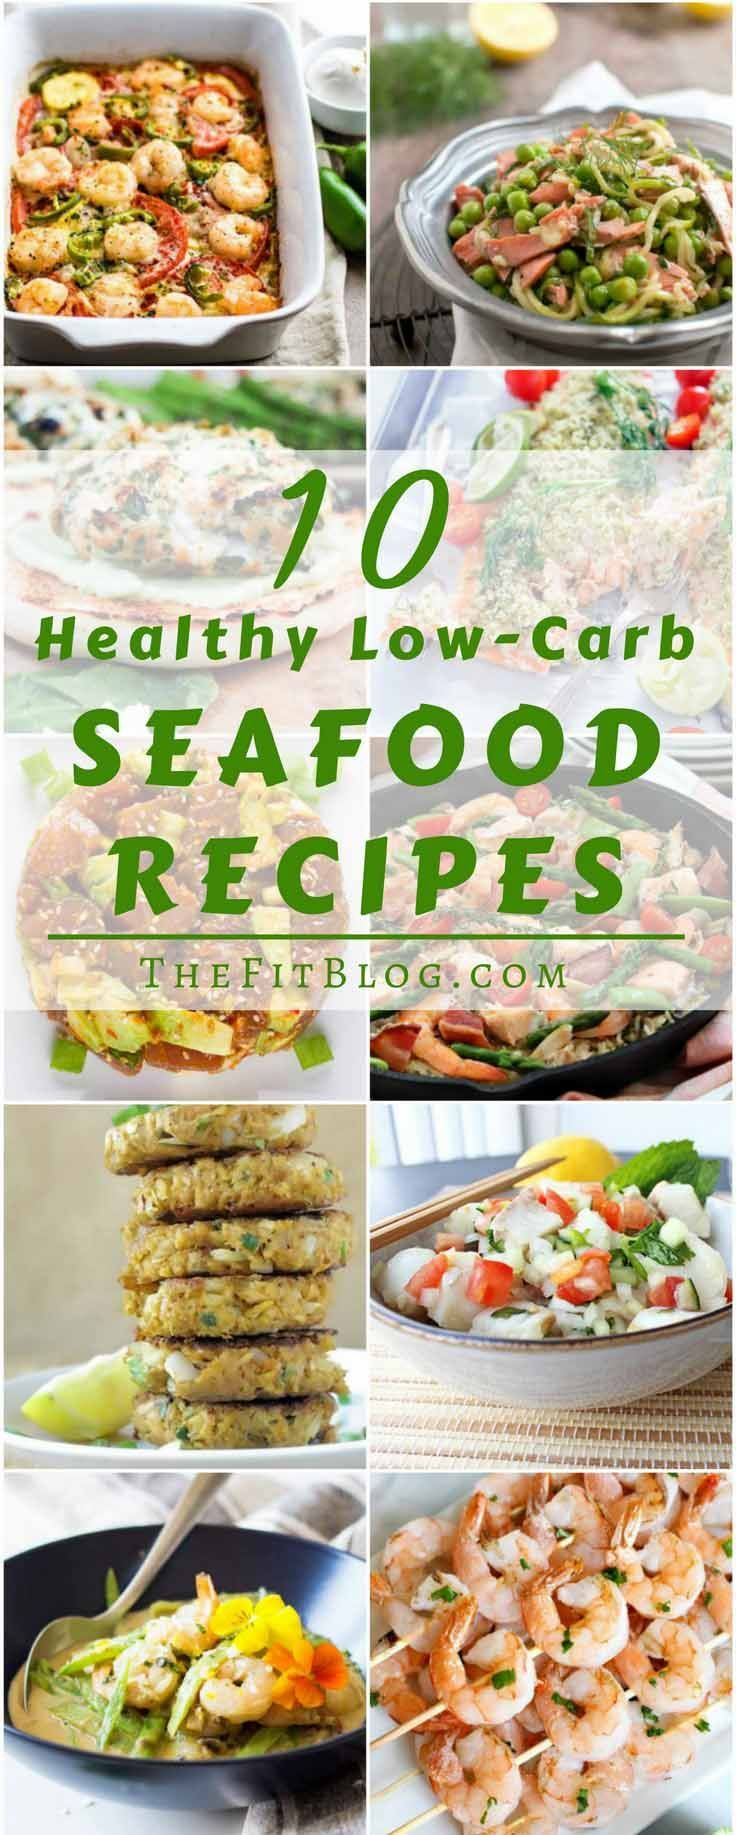 10 Healthy Low-Carb Seafood Recipes – The most delicious and easy to cook fish and shrimp recipes (high protein, low fat, paleo, sugar free, gluten free, diabetes friendly)